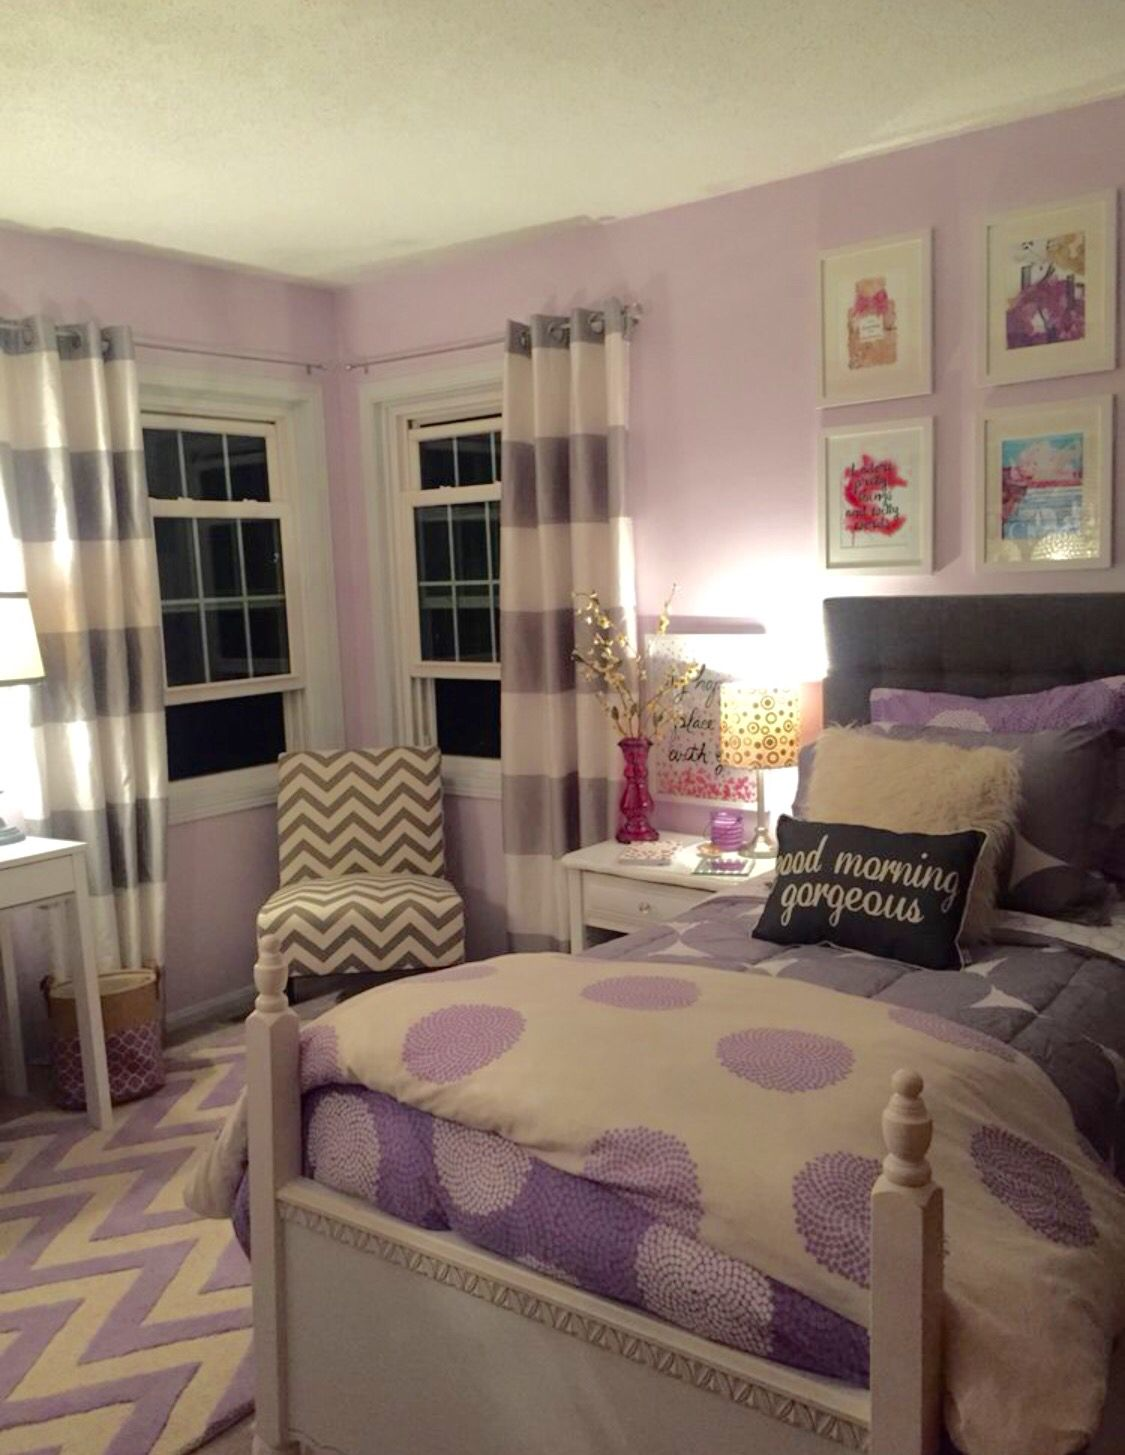 Violet Room Design: Pin On Room Makeovers